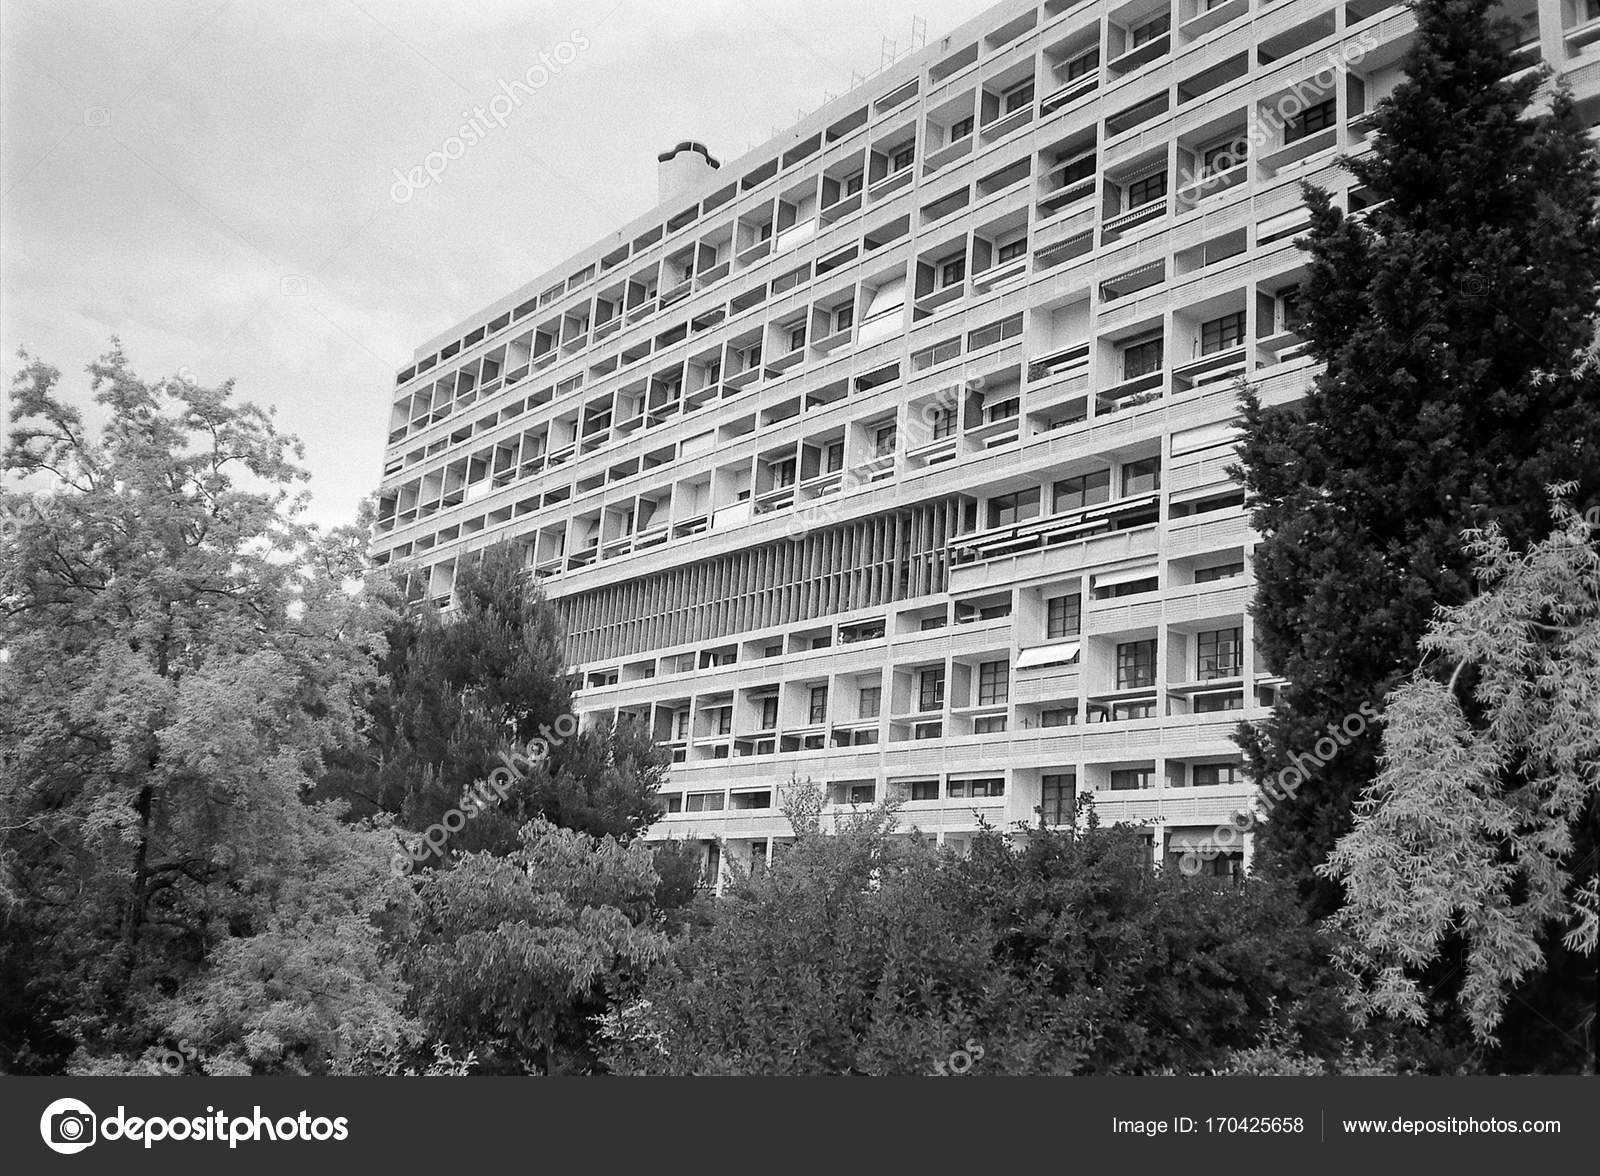 Unite d habitation in marseille black and white stock photo